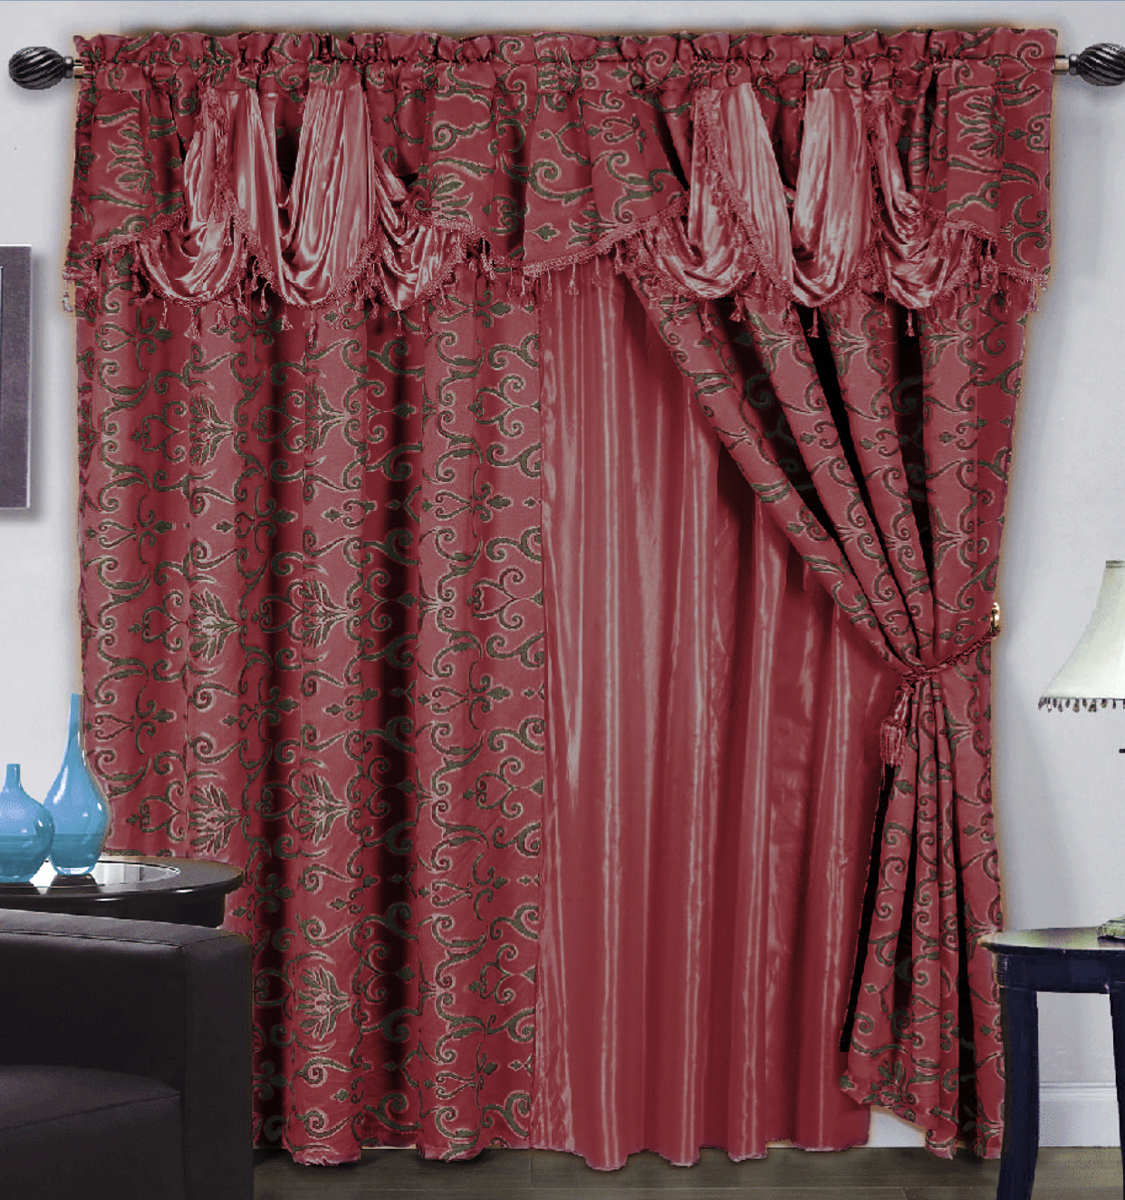 Curtains With Waterfall Valance 28 Images Regency Waterfall Valance Window Treatment United